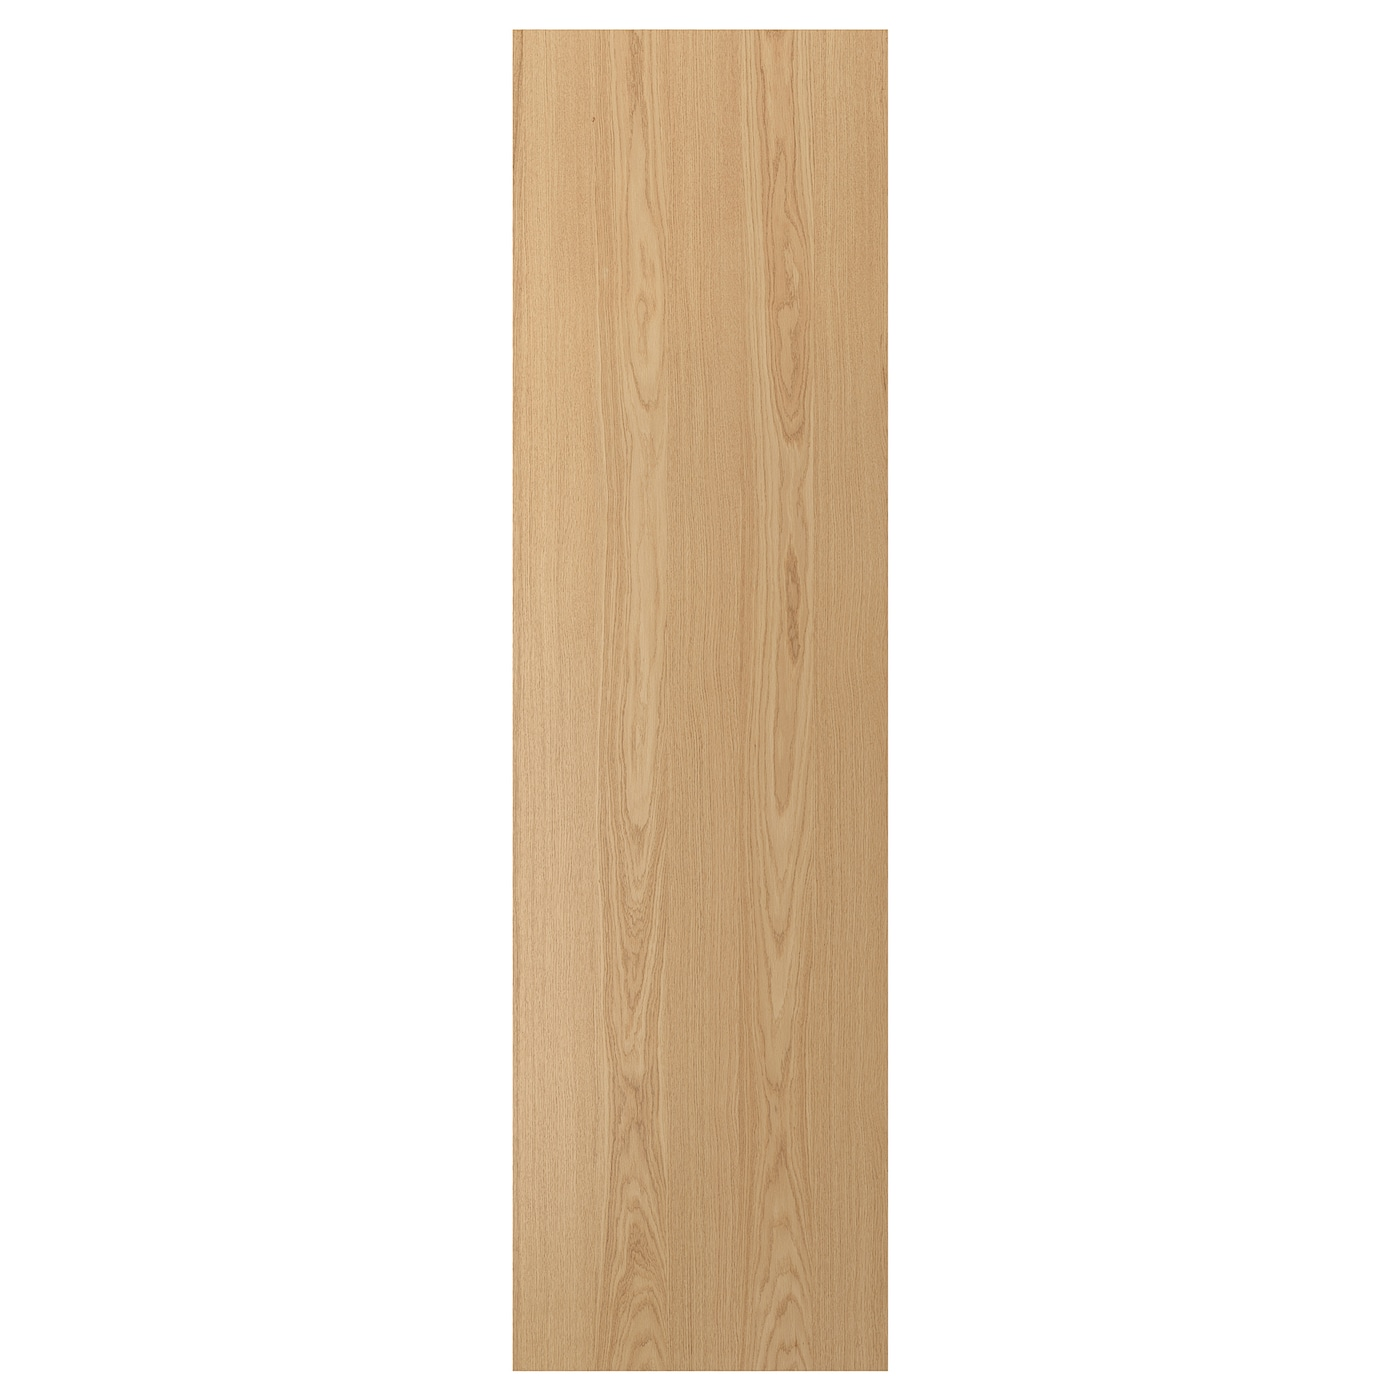 IKEA EKESTAD cover panel Visible variations in the wood grain give a warm, natural feeling.